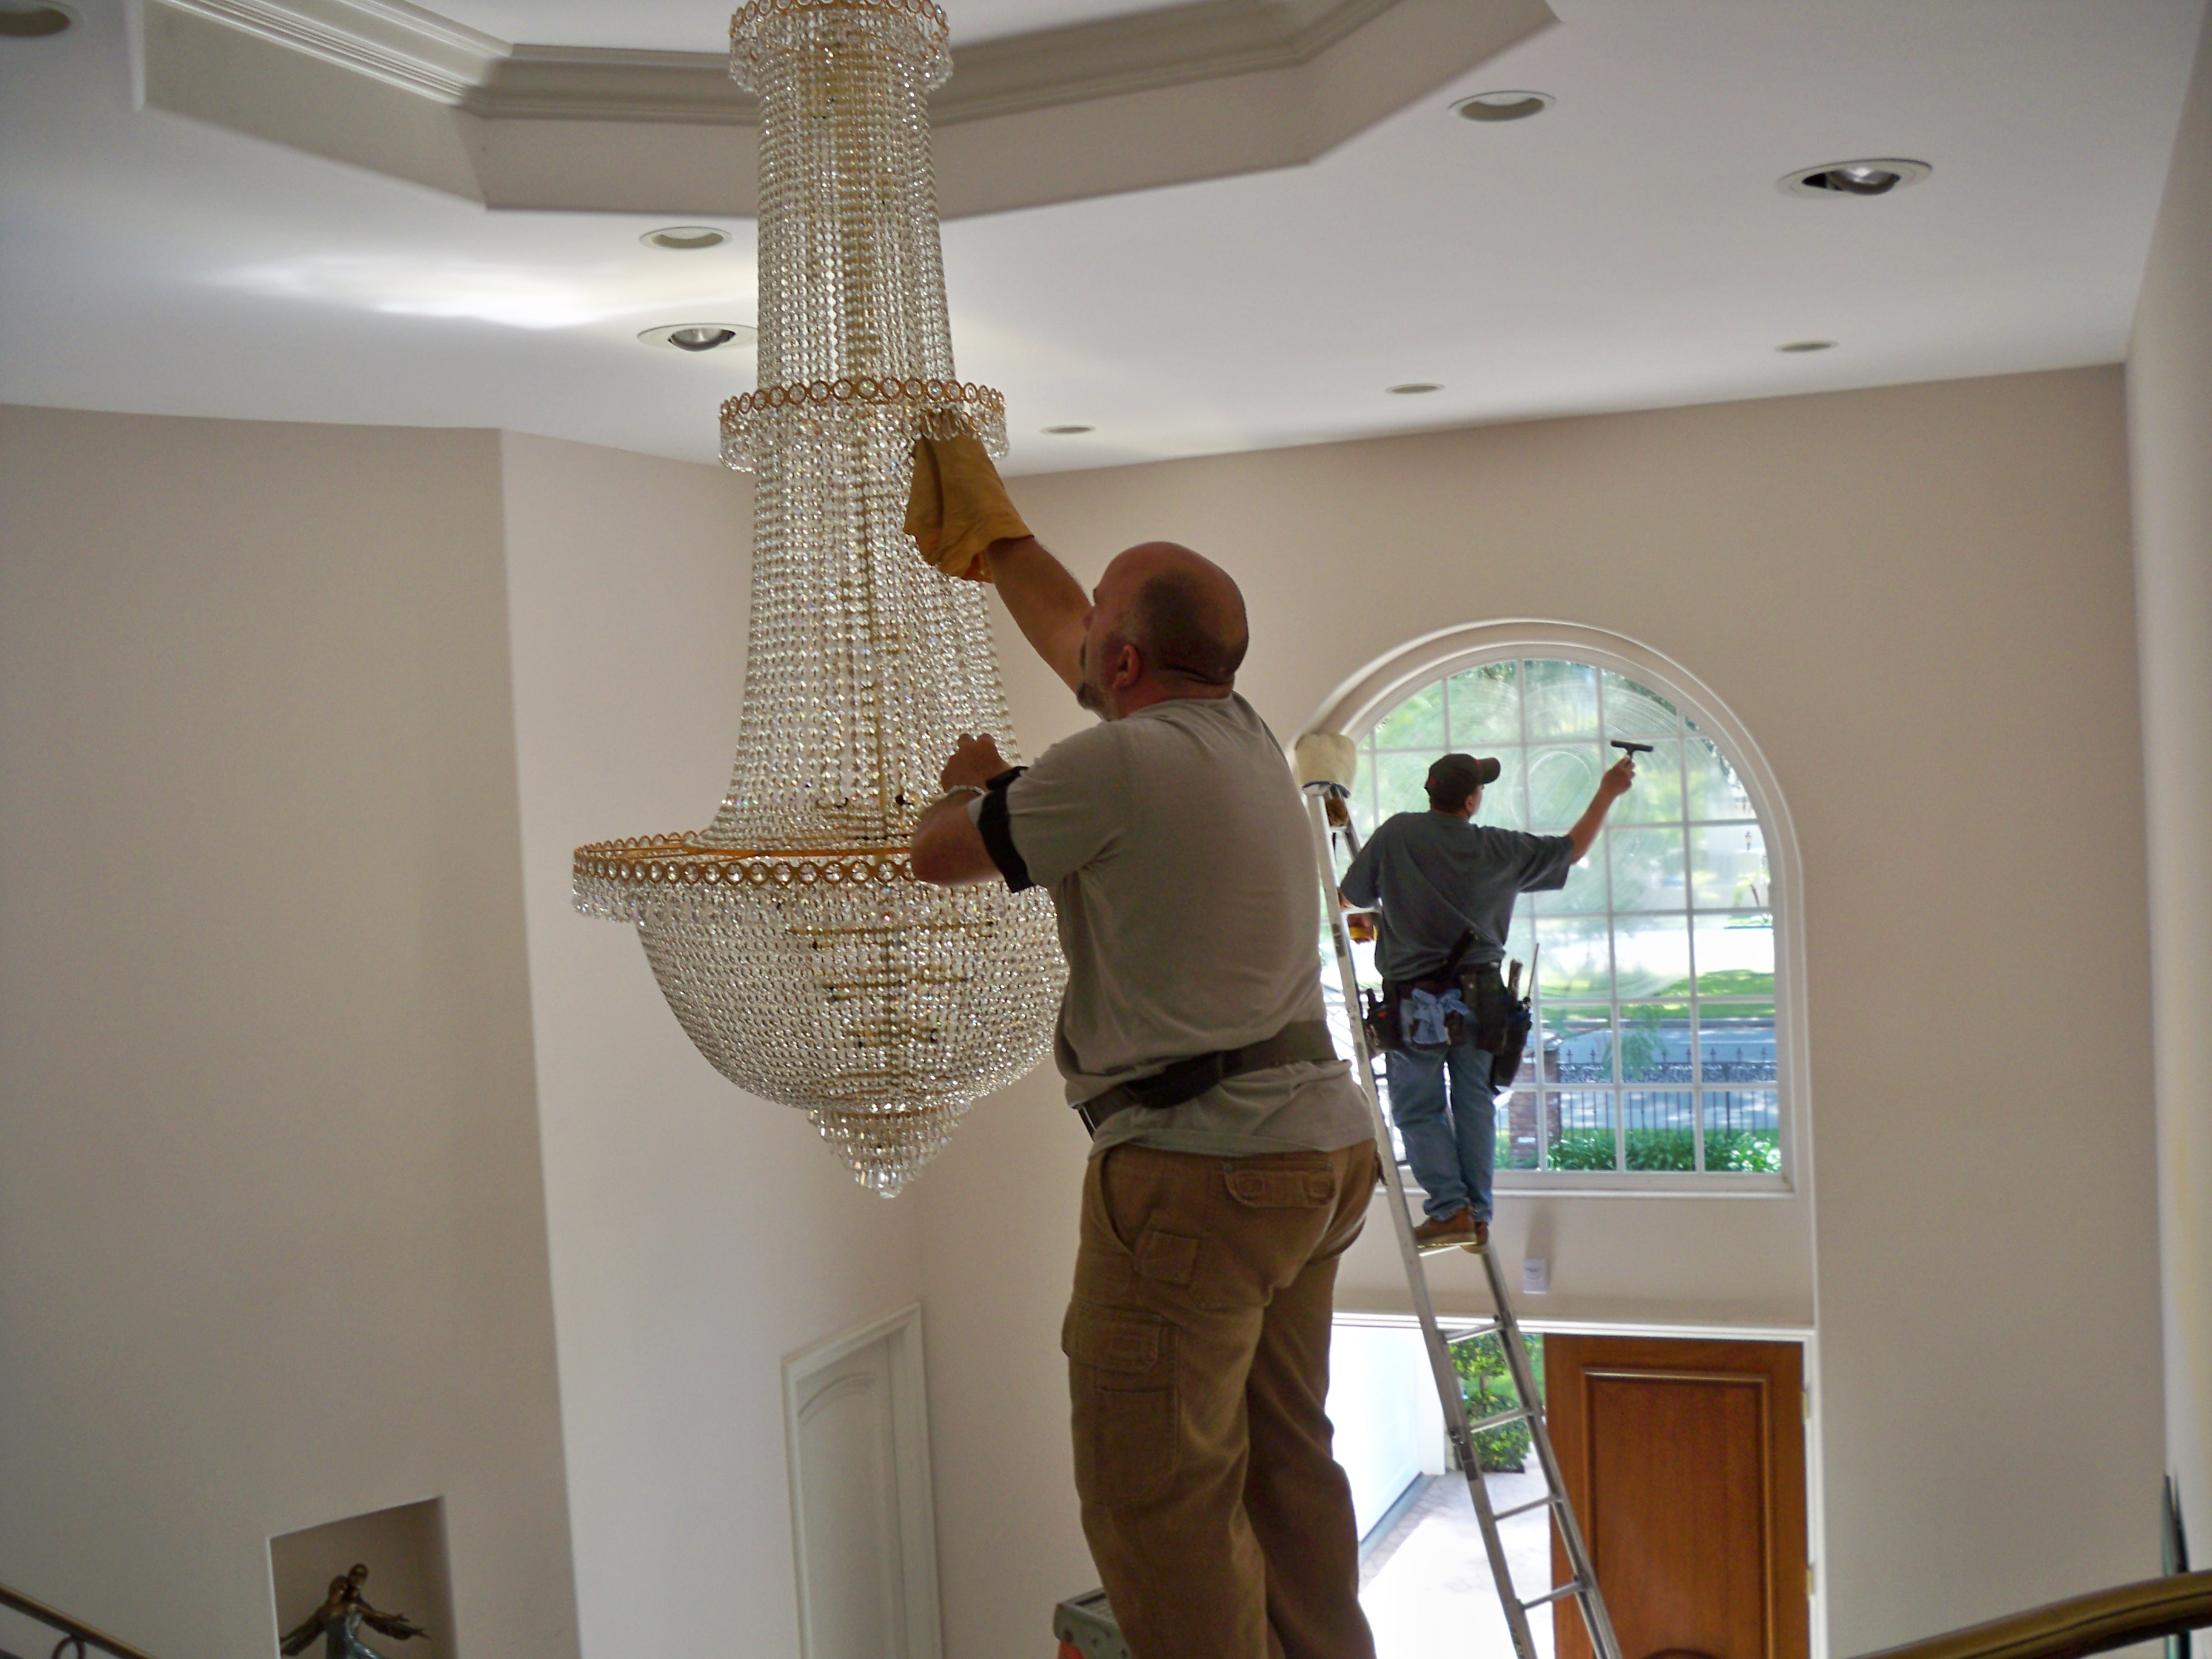 Window care inc chandelier cleaning chandelier cleaning chandelier washing chandelier cleaning mozeypictures Images